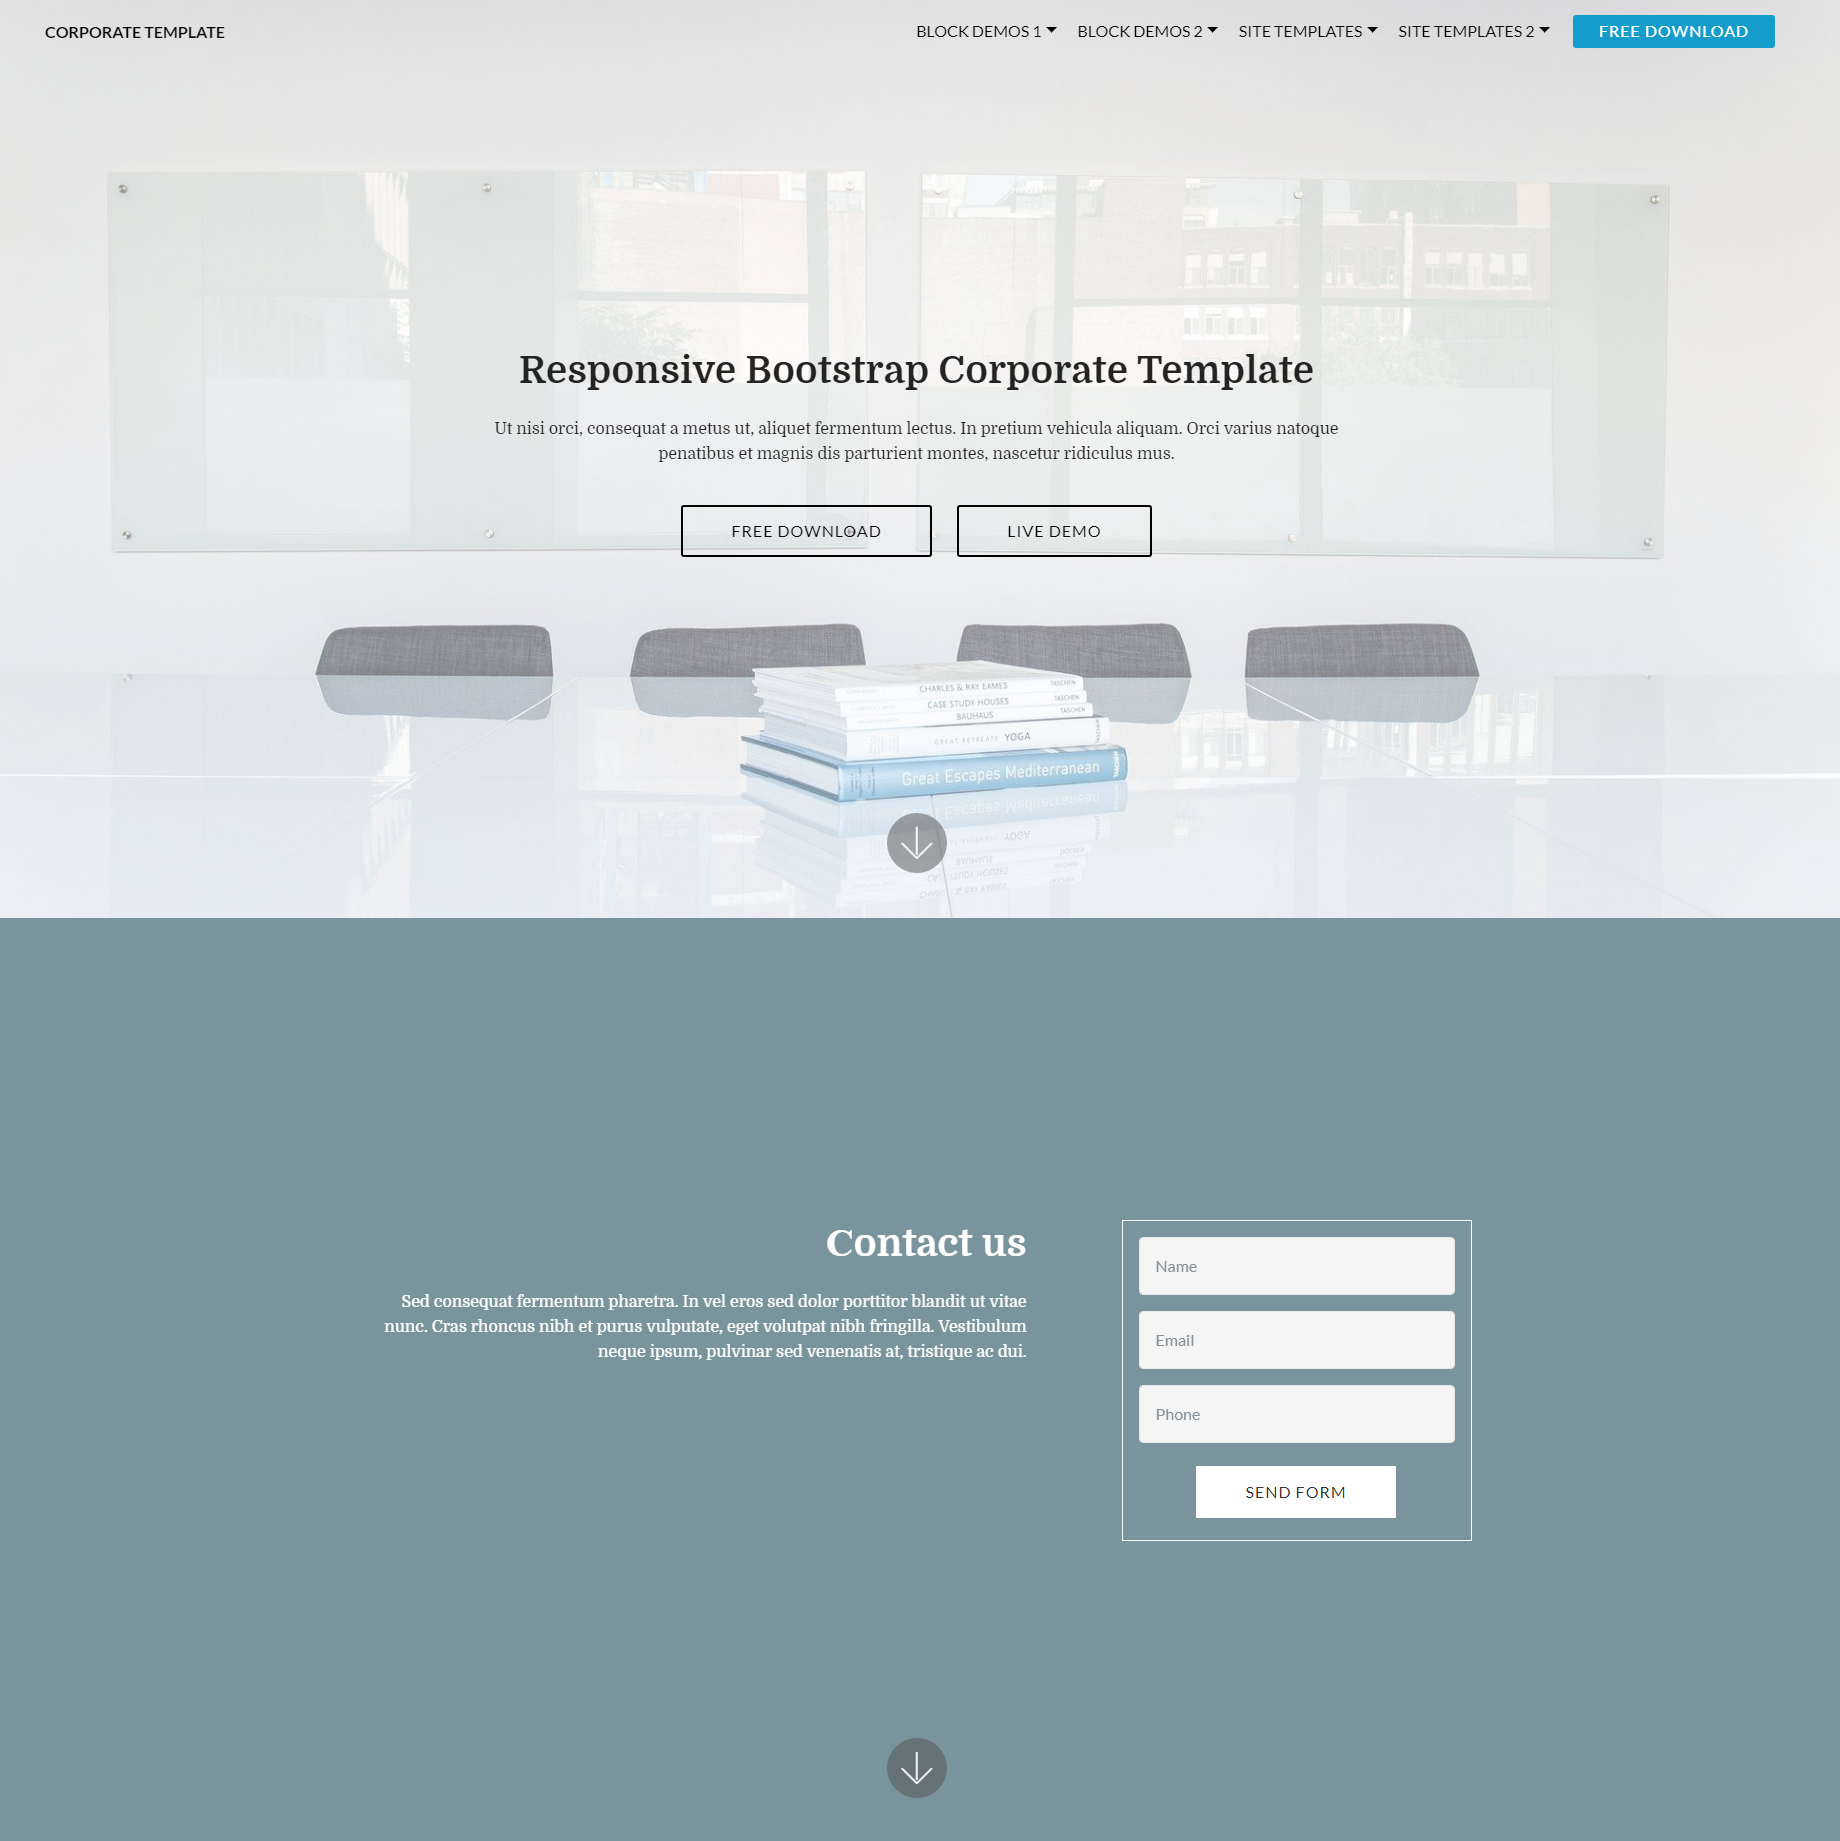 Responsive Bootstrap Corporate Templates